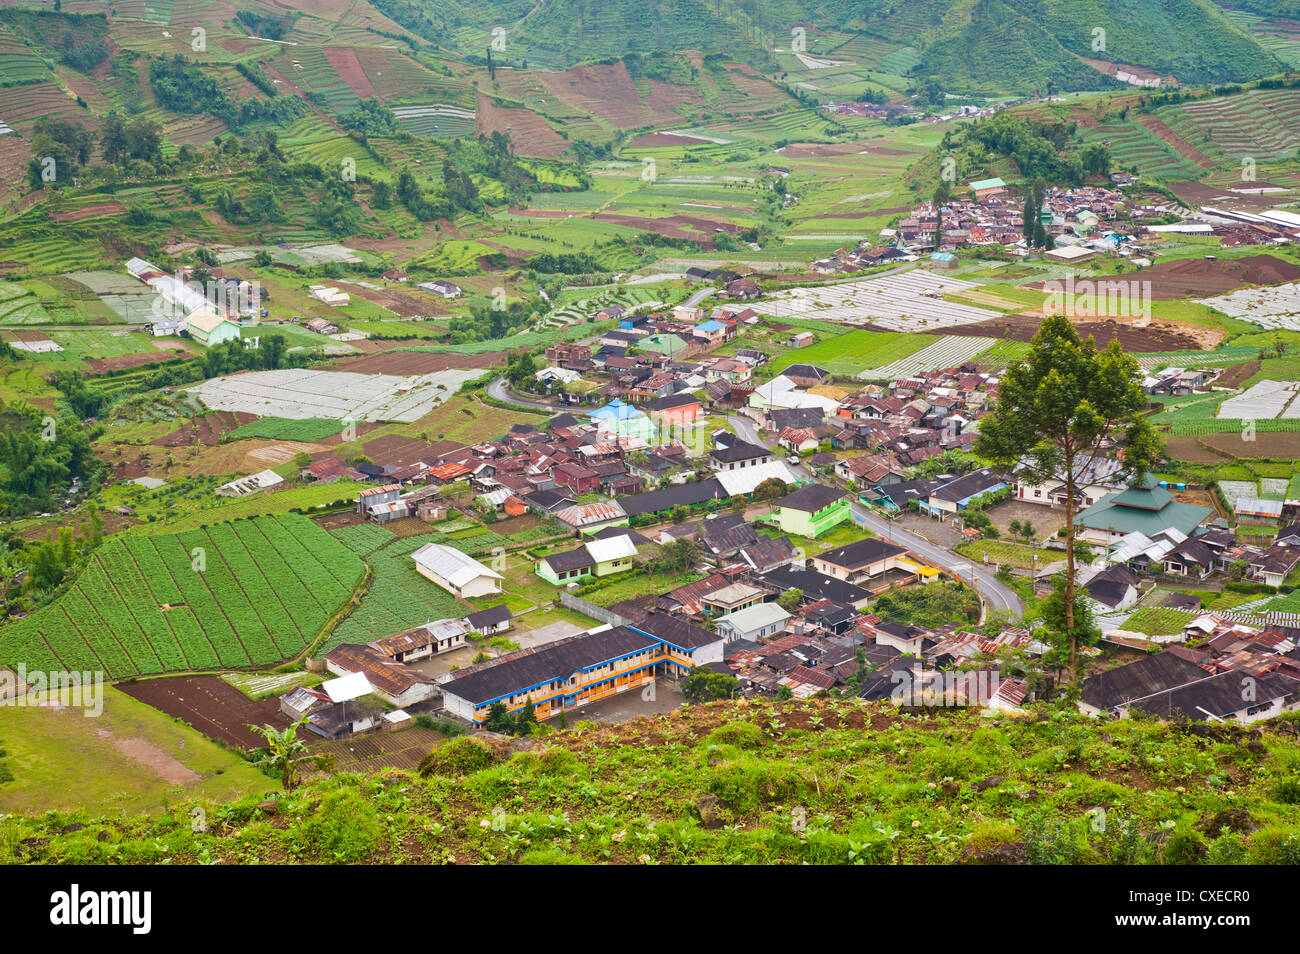 Wonosobo town, Dieng Plateau, Central Java, Indonesia, Southeast Asia, Asia - Stock Image